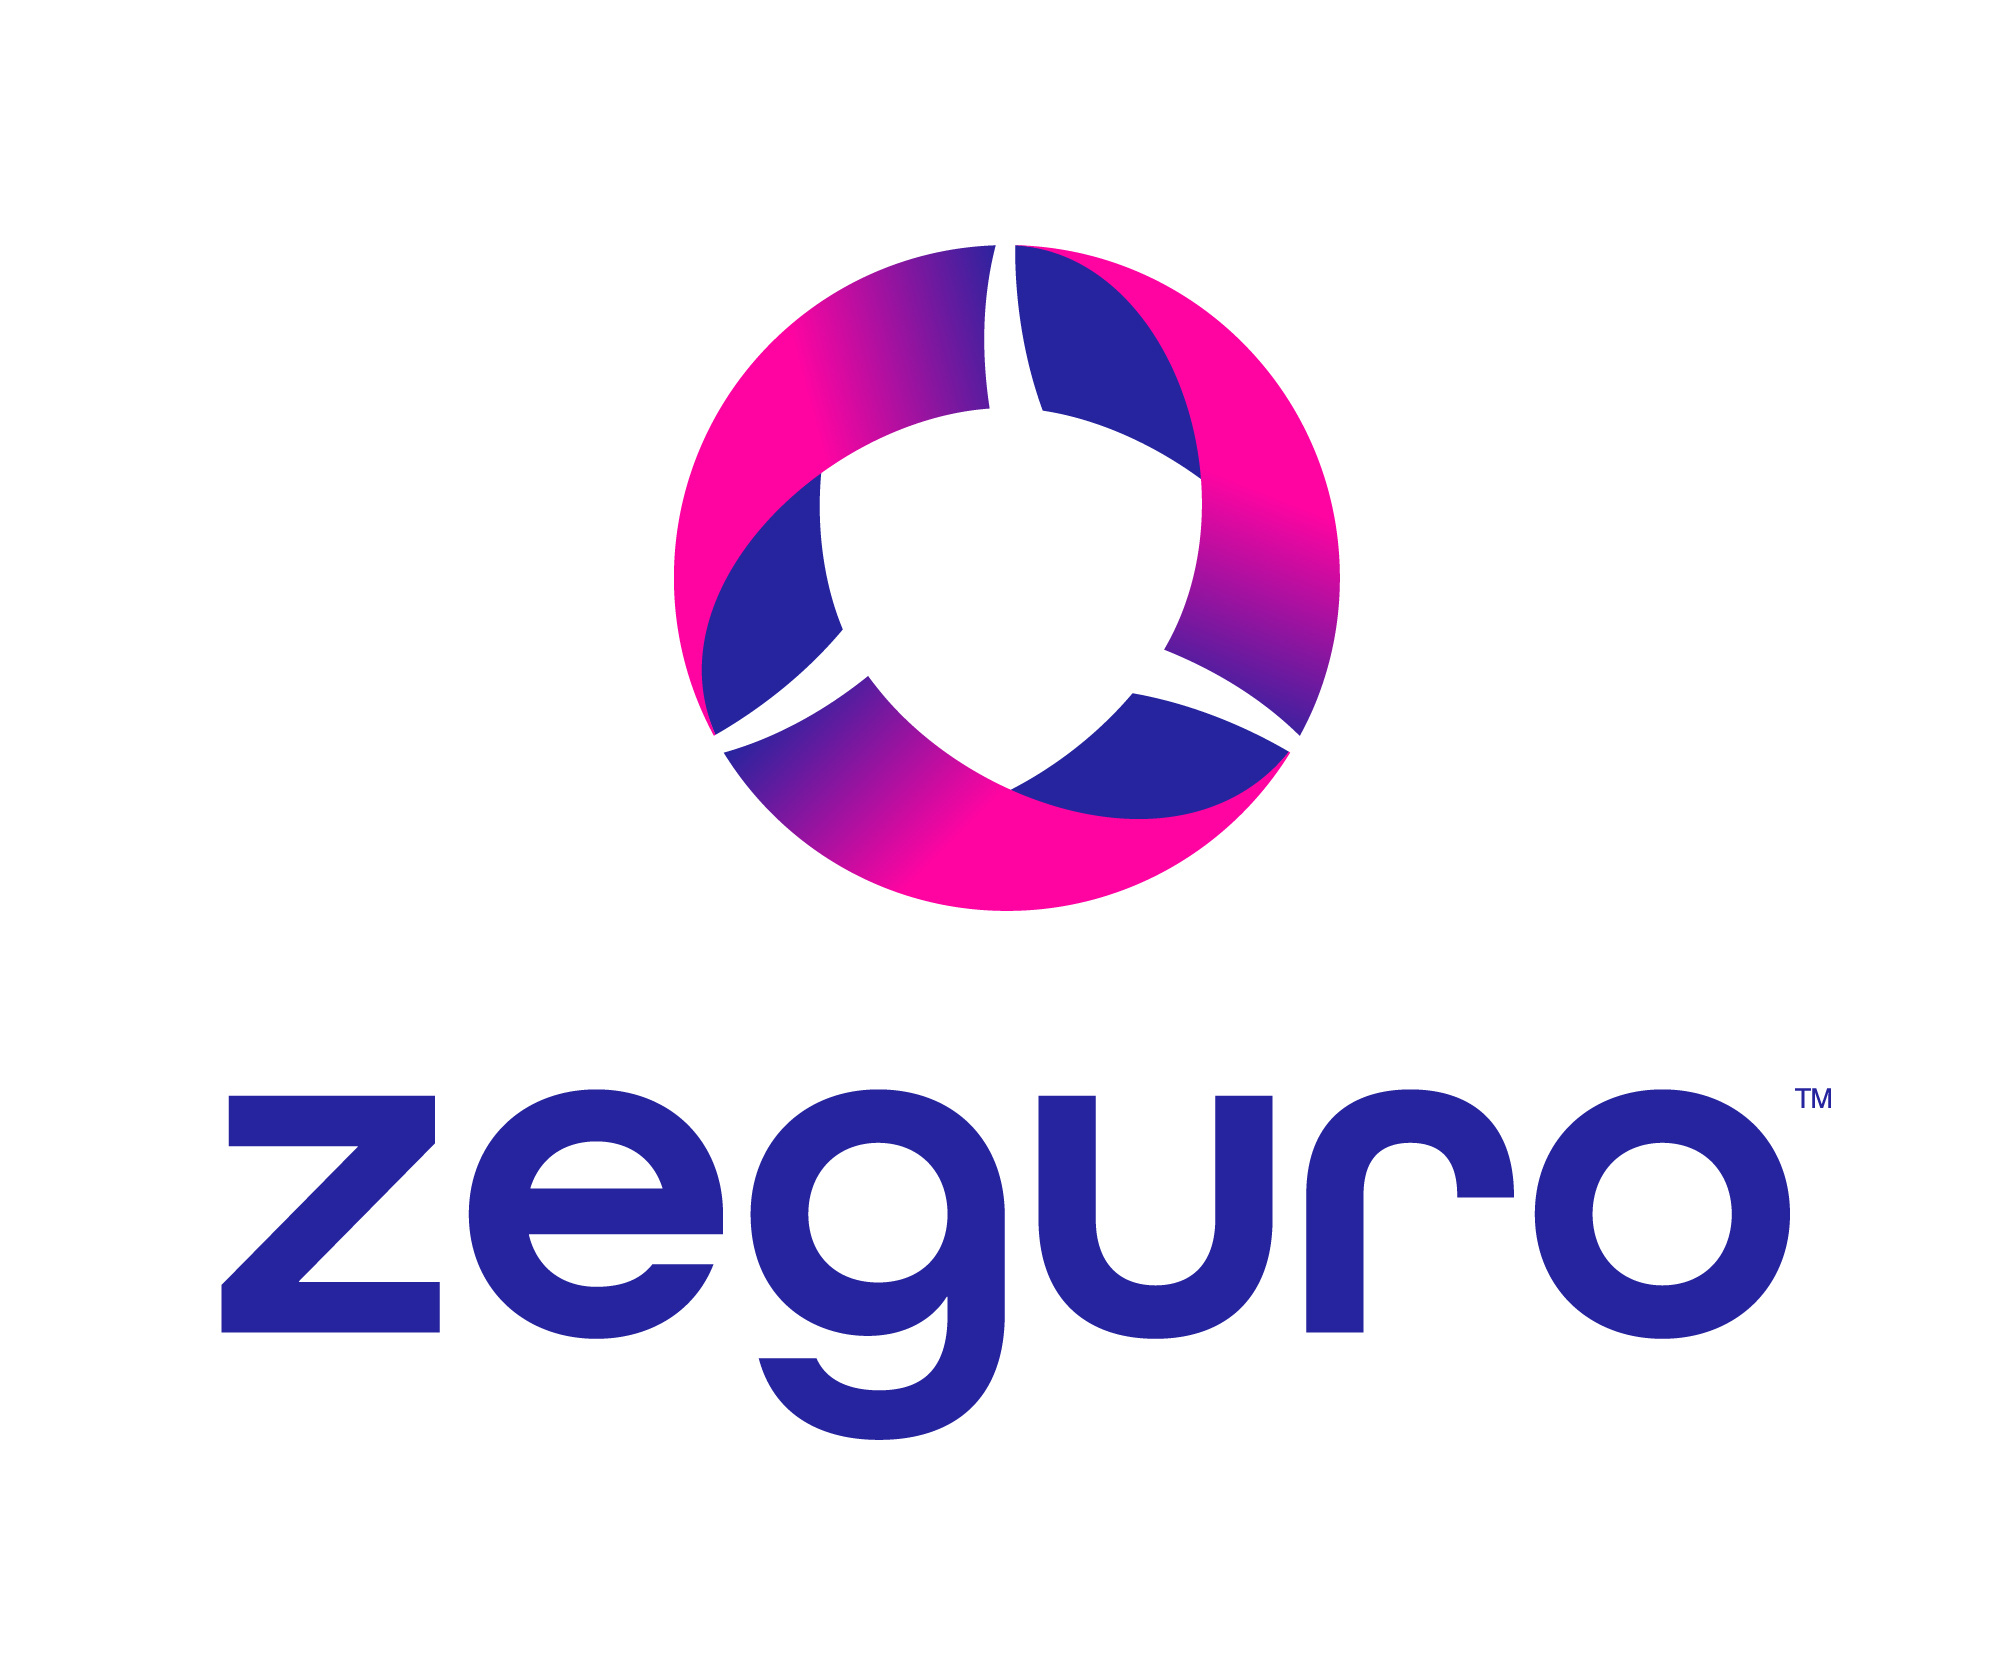 Zeguro Announces End-to-End Insurance Policy Quotes for SMEs and Availability in All 50 States